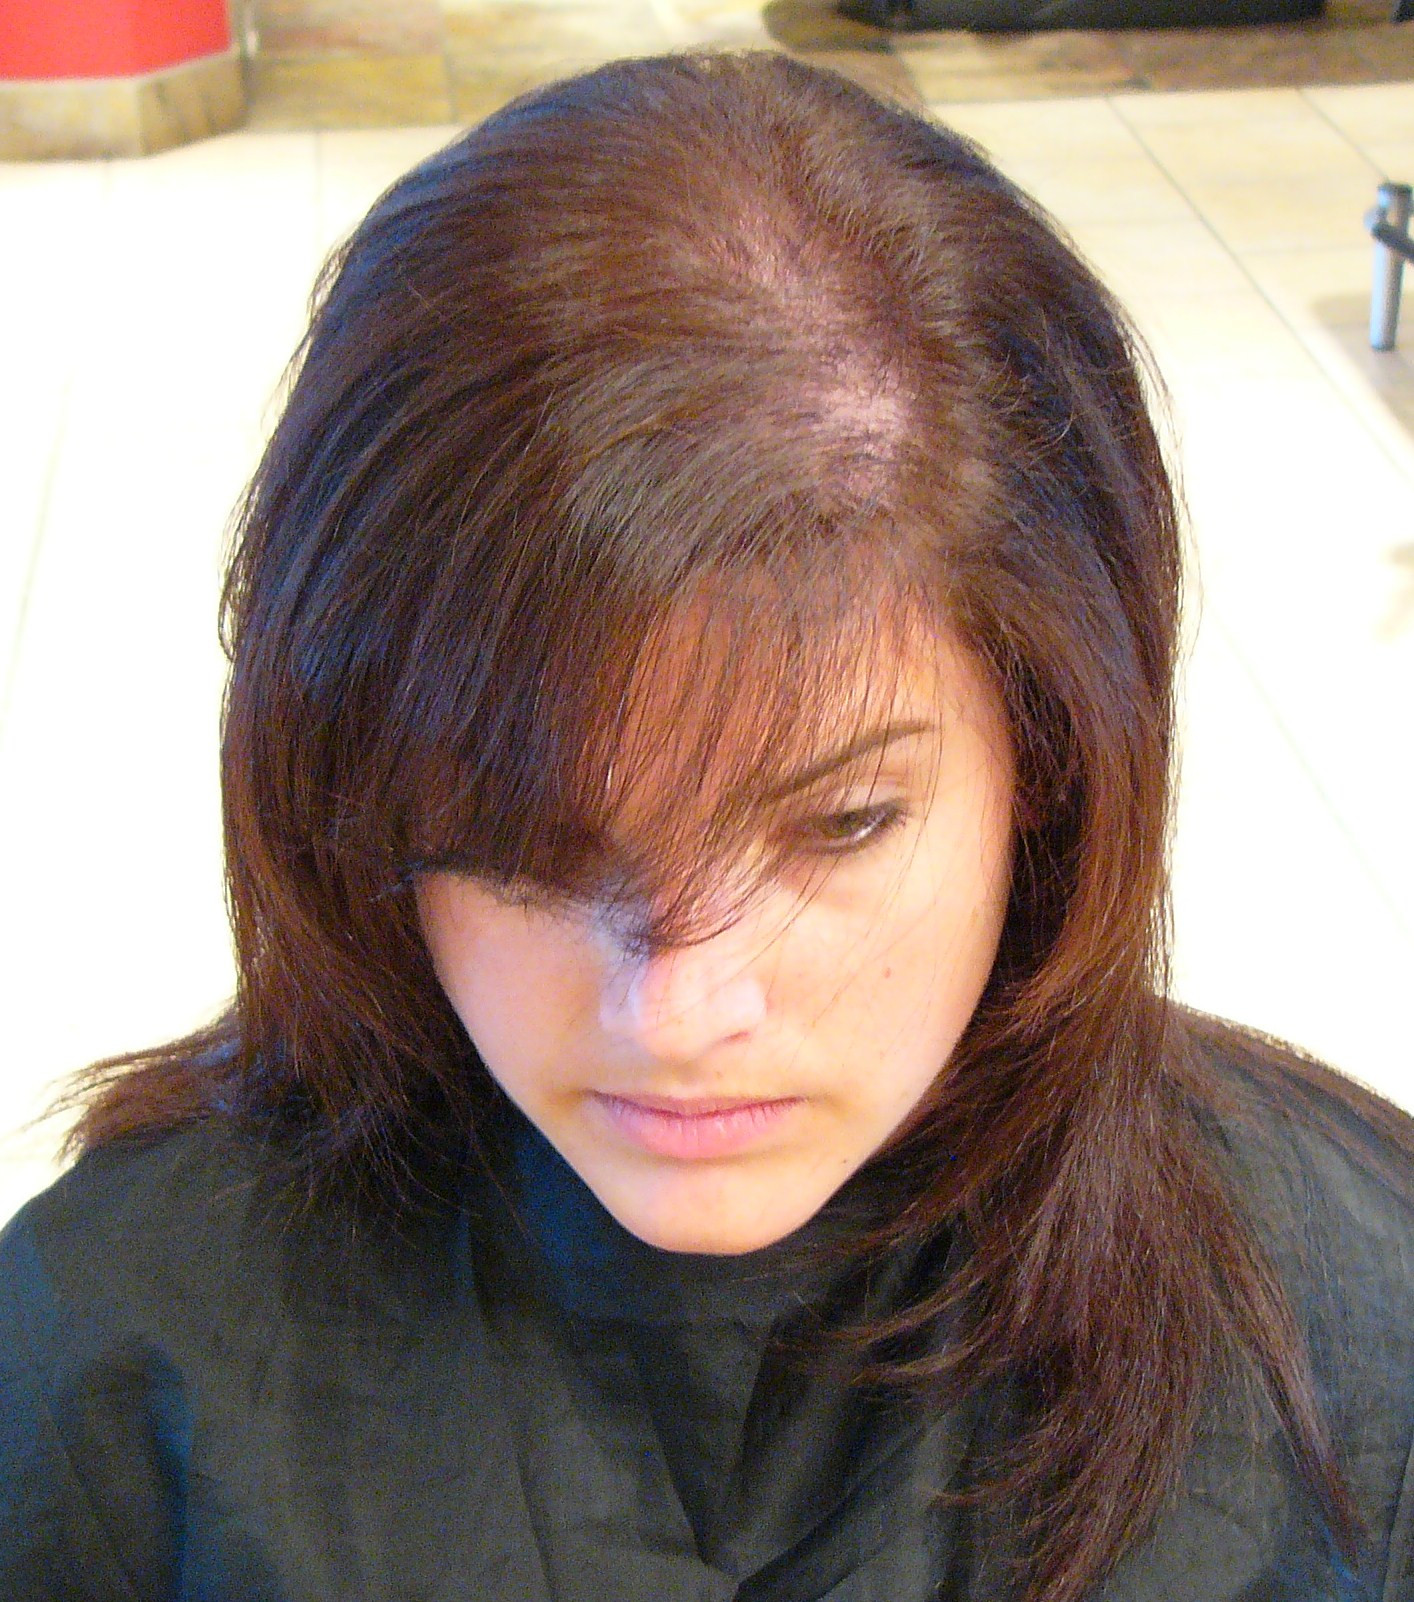 Best ideas about Hairstyles Female Pattern Baldness . Save or Pin Volluma Confronts Social Taboo of Women s Hair Loss Now.